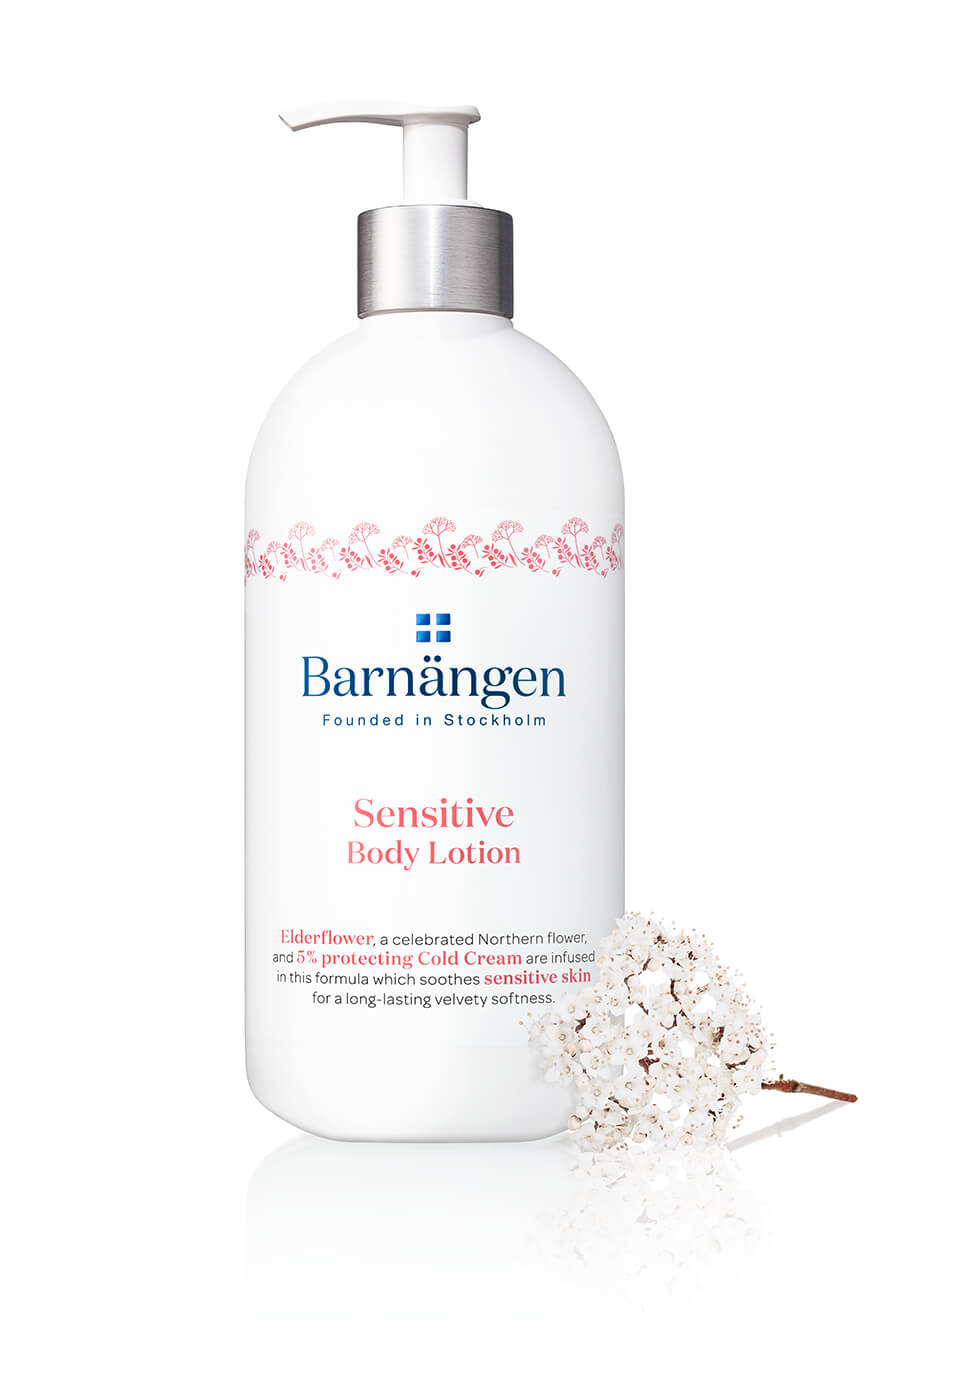 barnangen_com_nordic_care_sensitive_body_lotion_970x1400